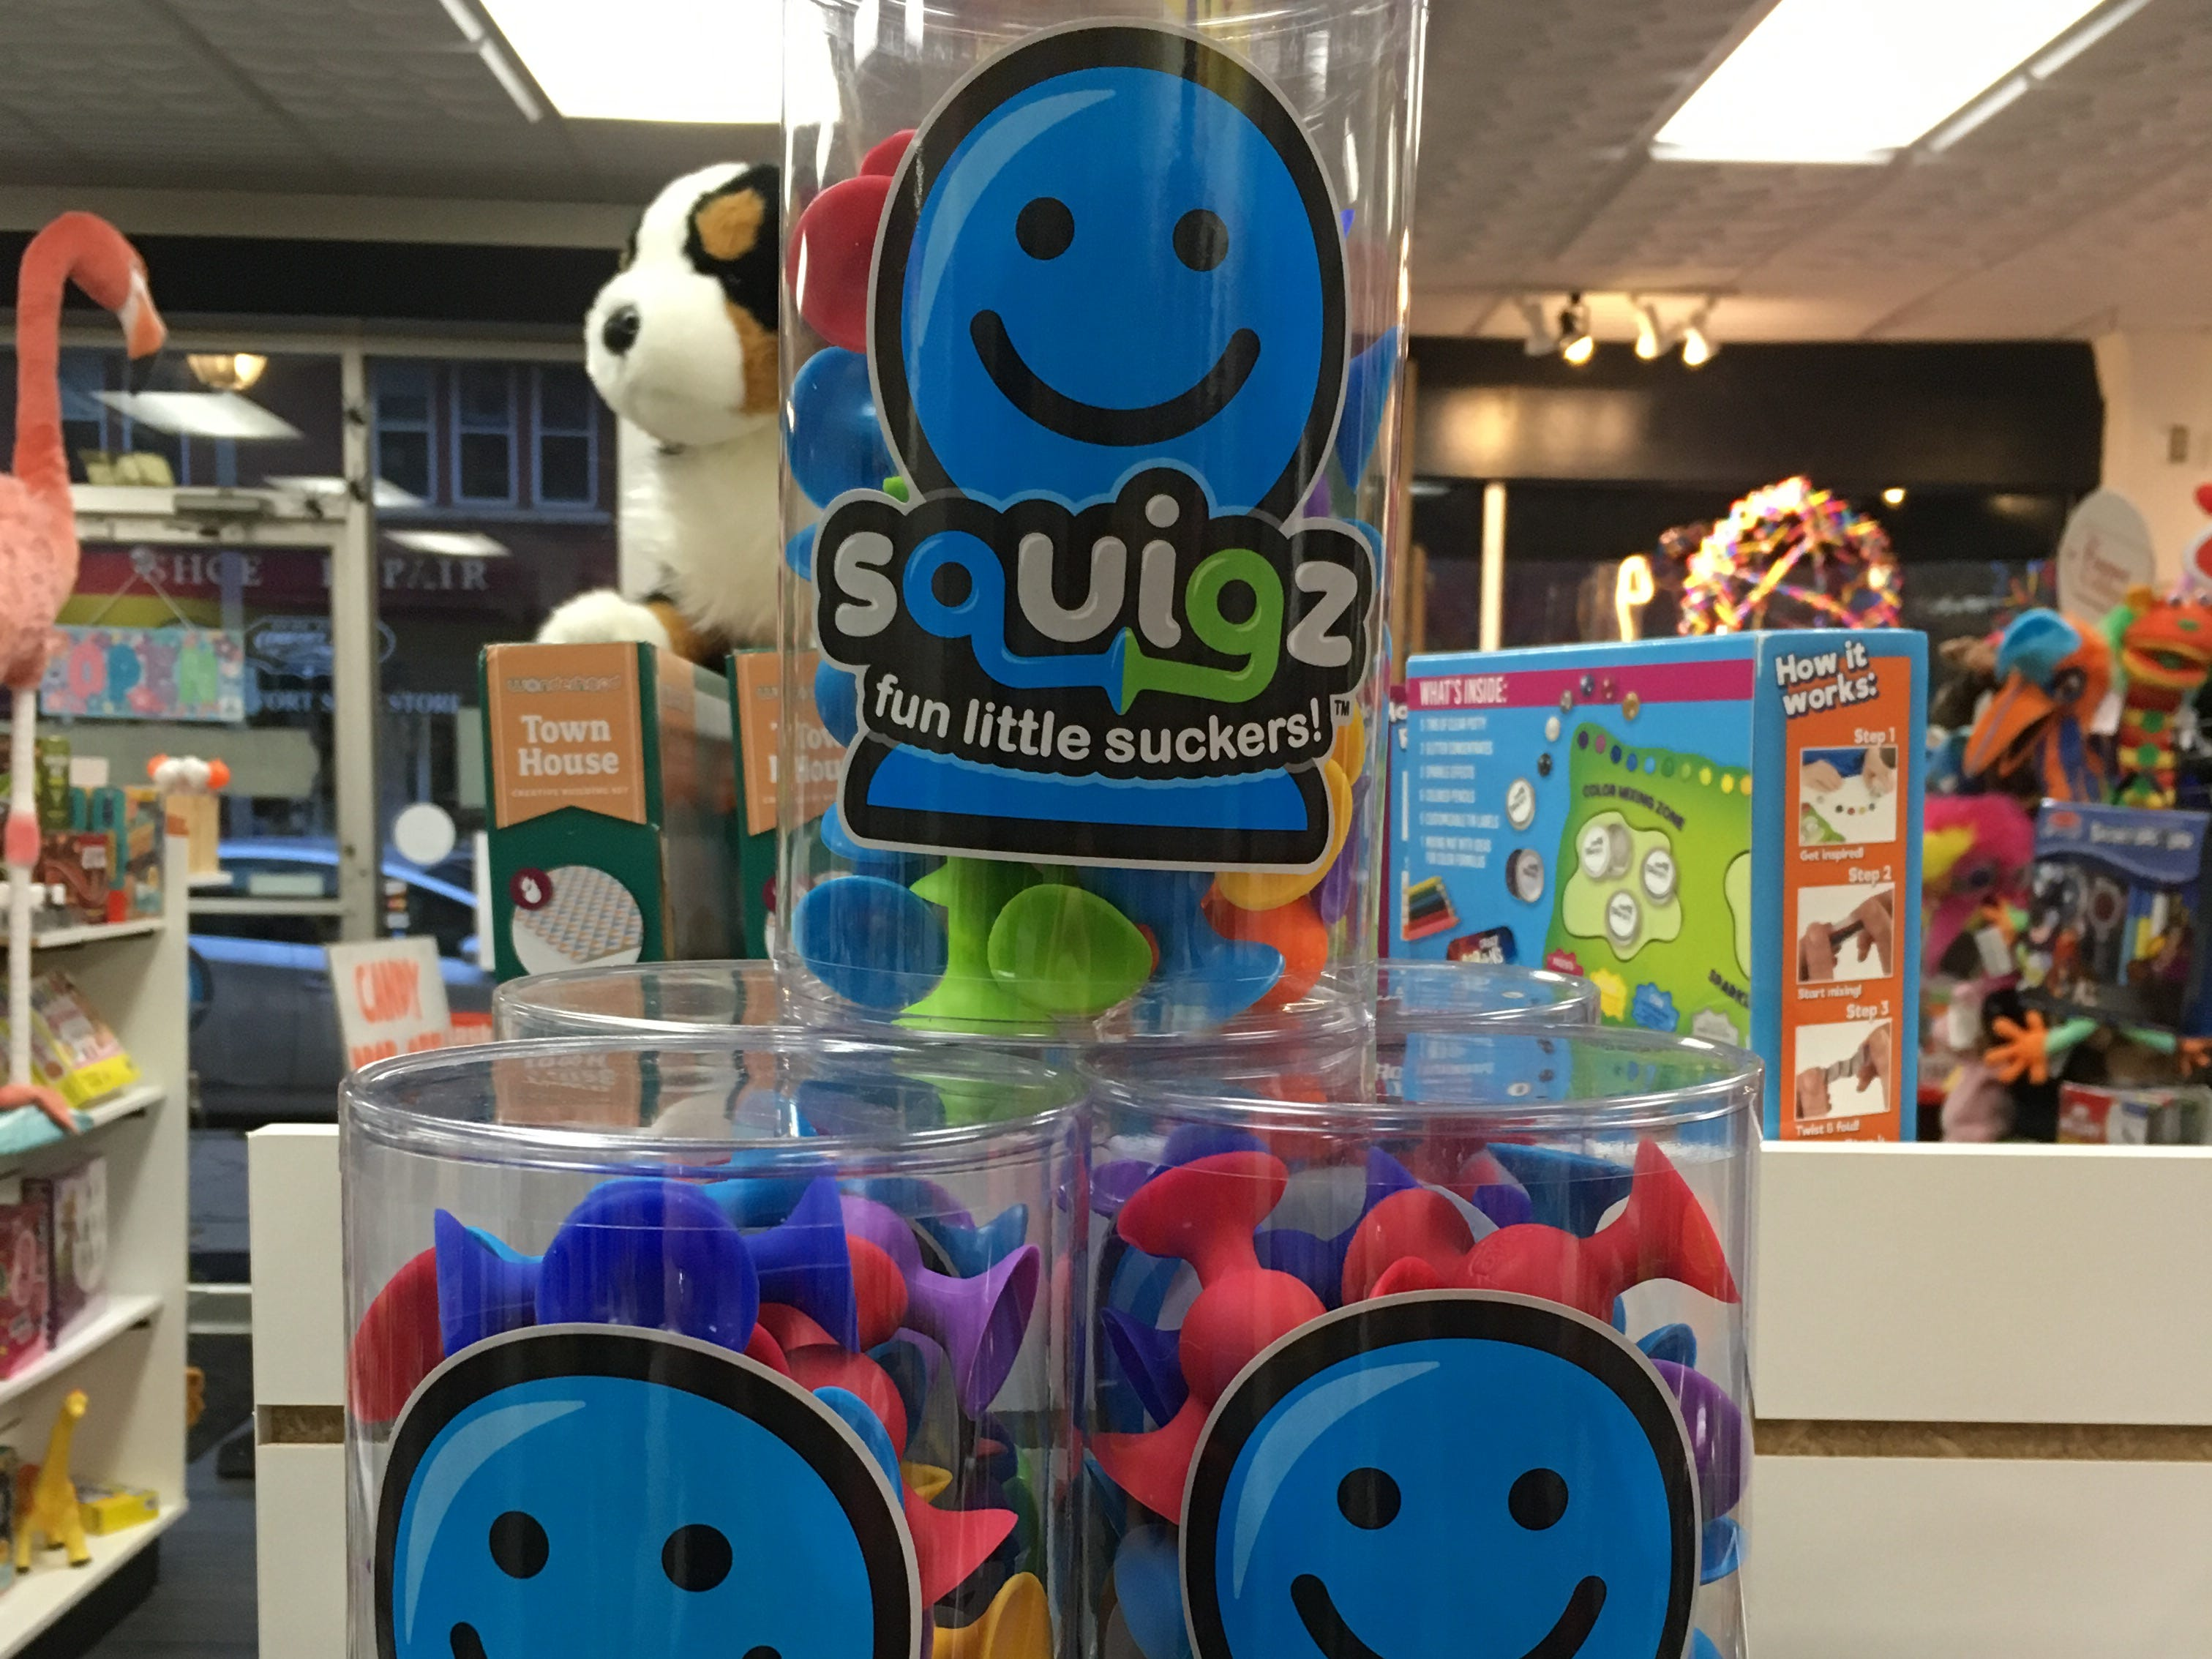 A fun building toy for younger kids is Squigz, little suction cups that are sold at Ruckus and Glee in Wauwatosa.